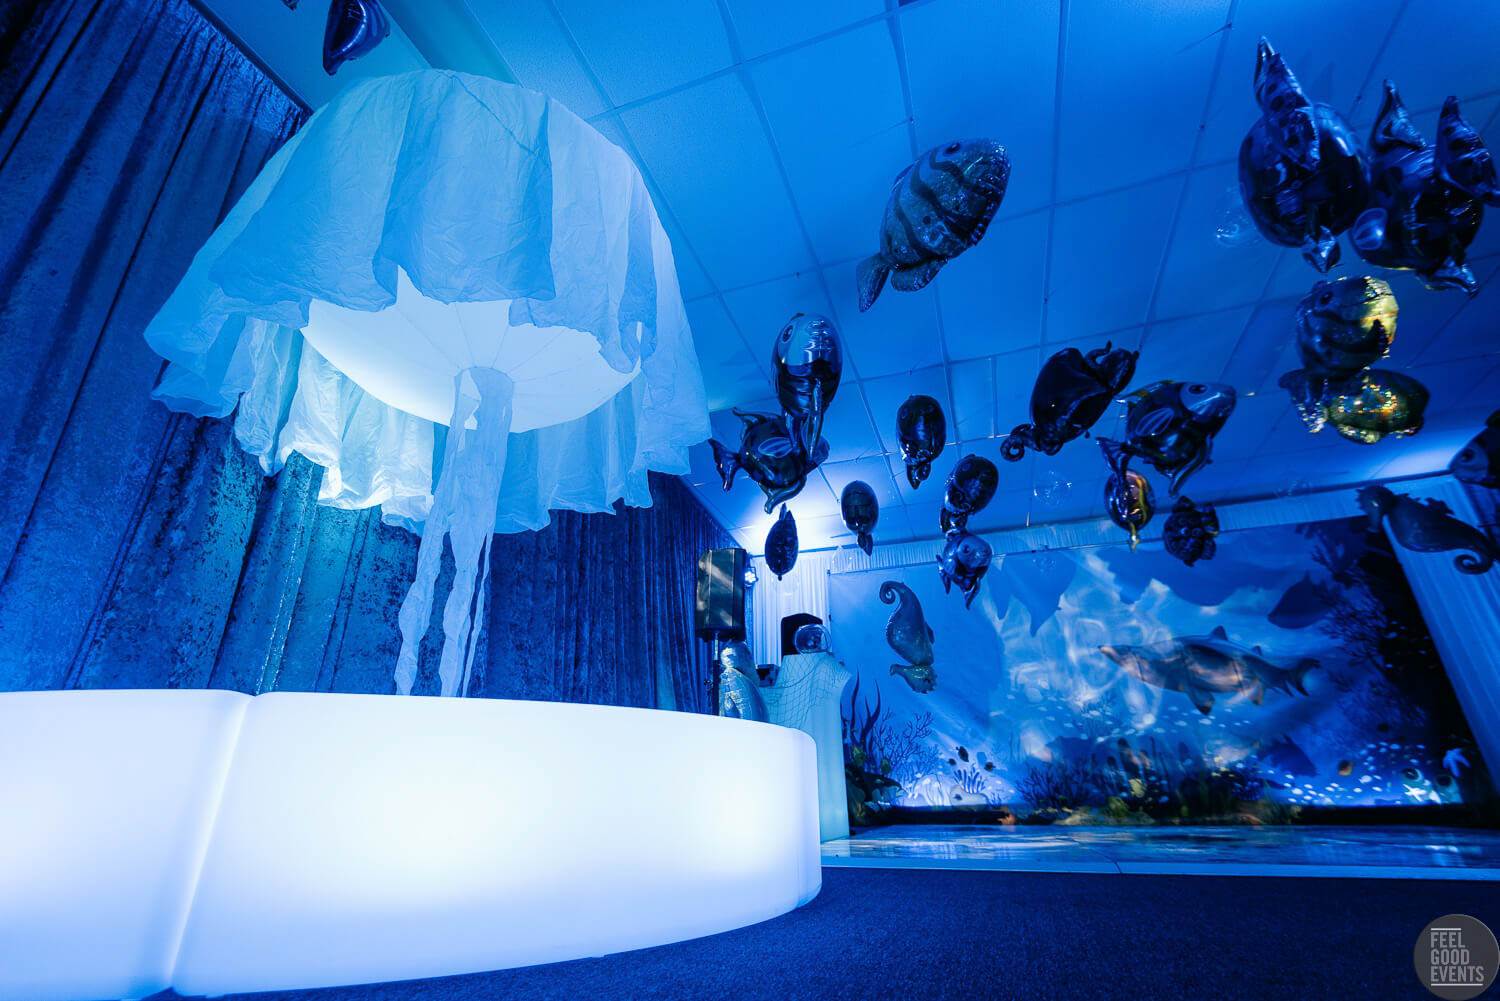 Inflatable Jelly Fish, Inflatable Jellyfish prop for hire